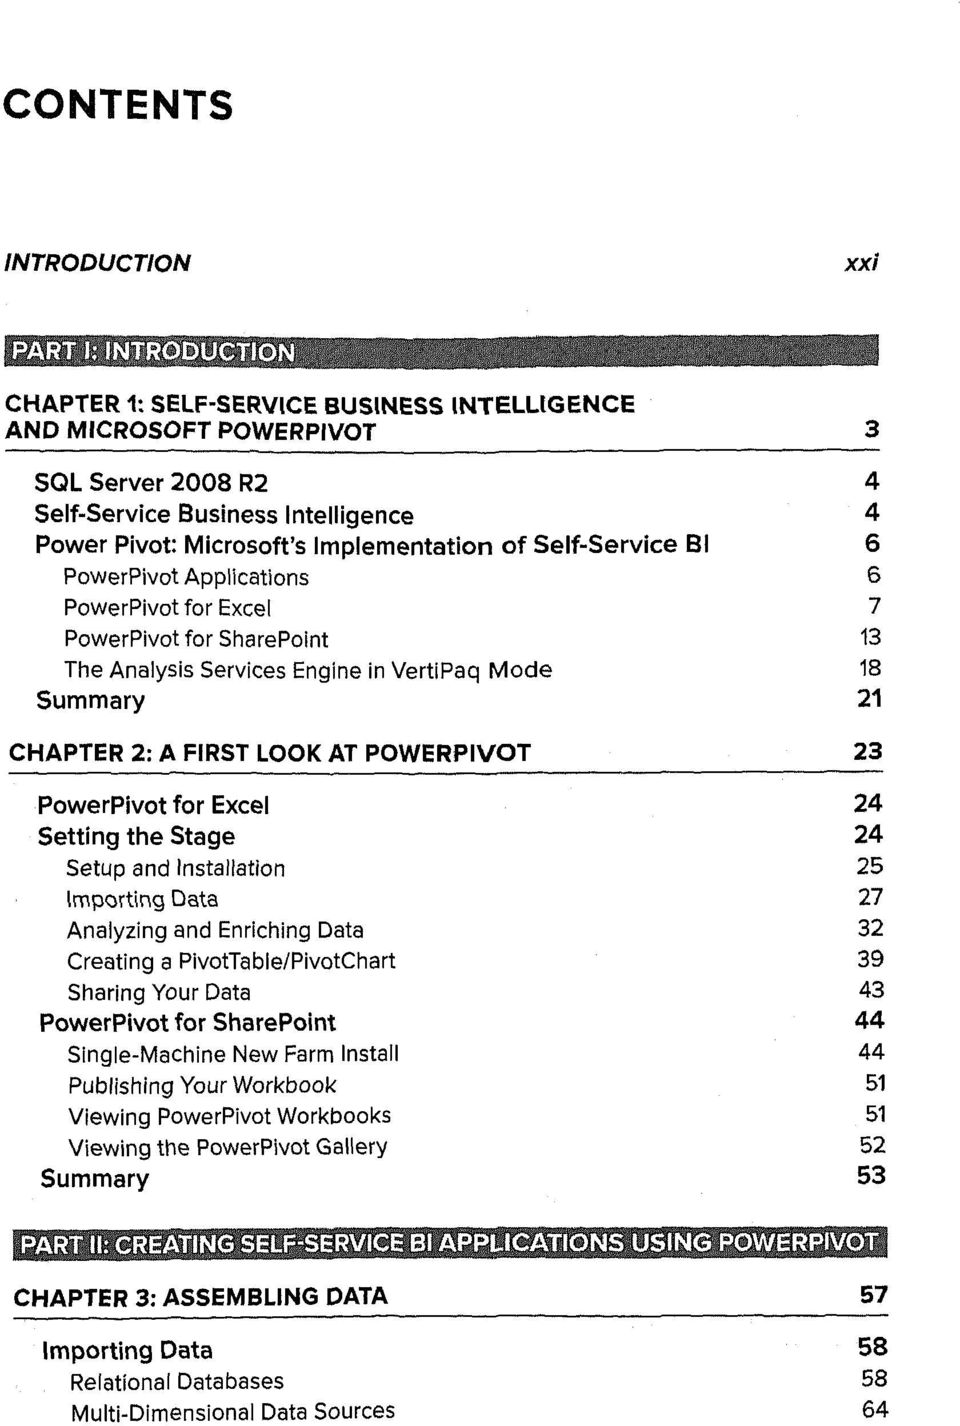 PowerPivot Applications 6 PowerPivot for Excel 7 PowerPivot for SharePoint 13 The Analysis Services Engine in VertiPaq Mode 18 Summary 21 CHAPTER 2: A FIRST LOOK AT POWERPIVOT 23 PowerPivot for Excel